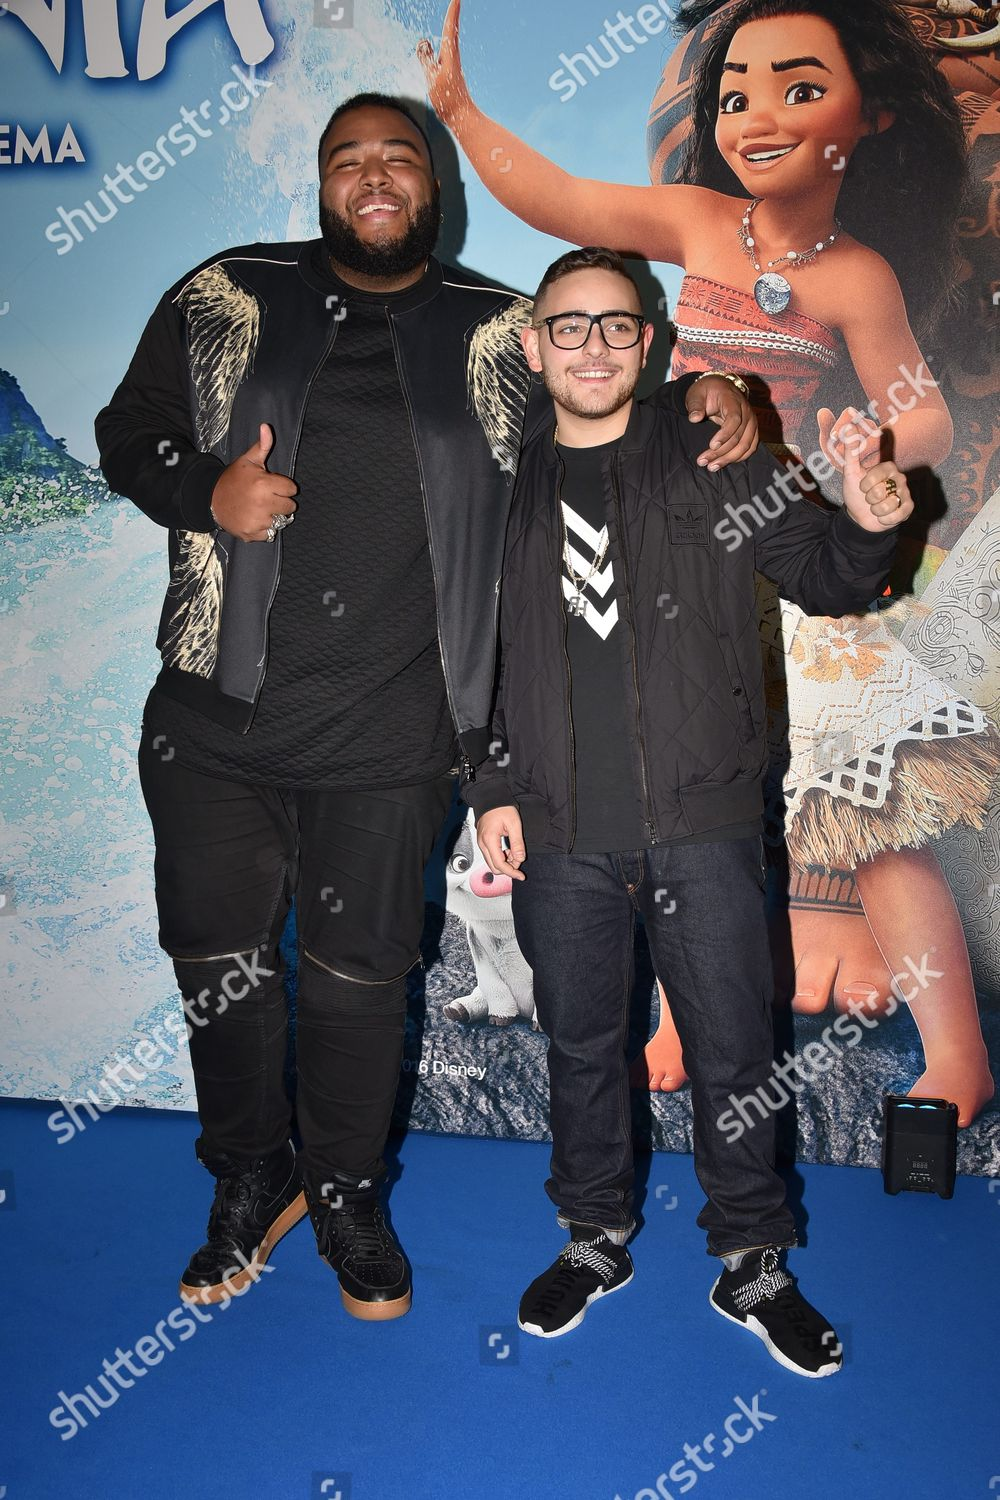 d3f7dc7c21 'Moana' film photocall, Rome, Italy Stock Image by Vincenzo Landi for  editorial use, Nov 28, 2016